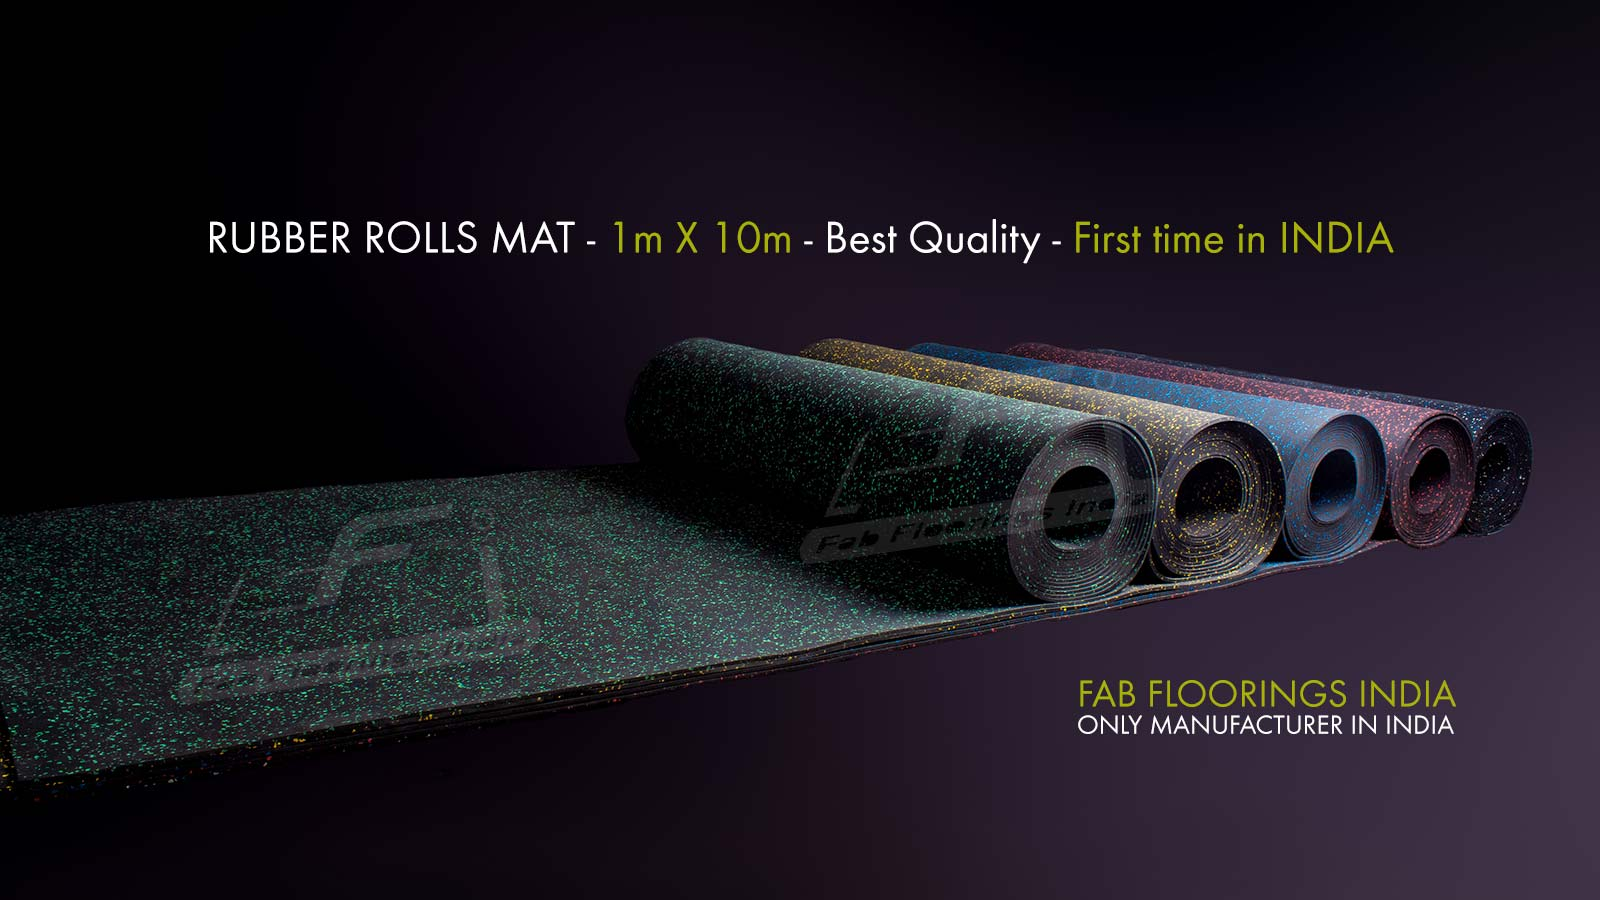 Rubber Roll Mat - First Time in India